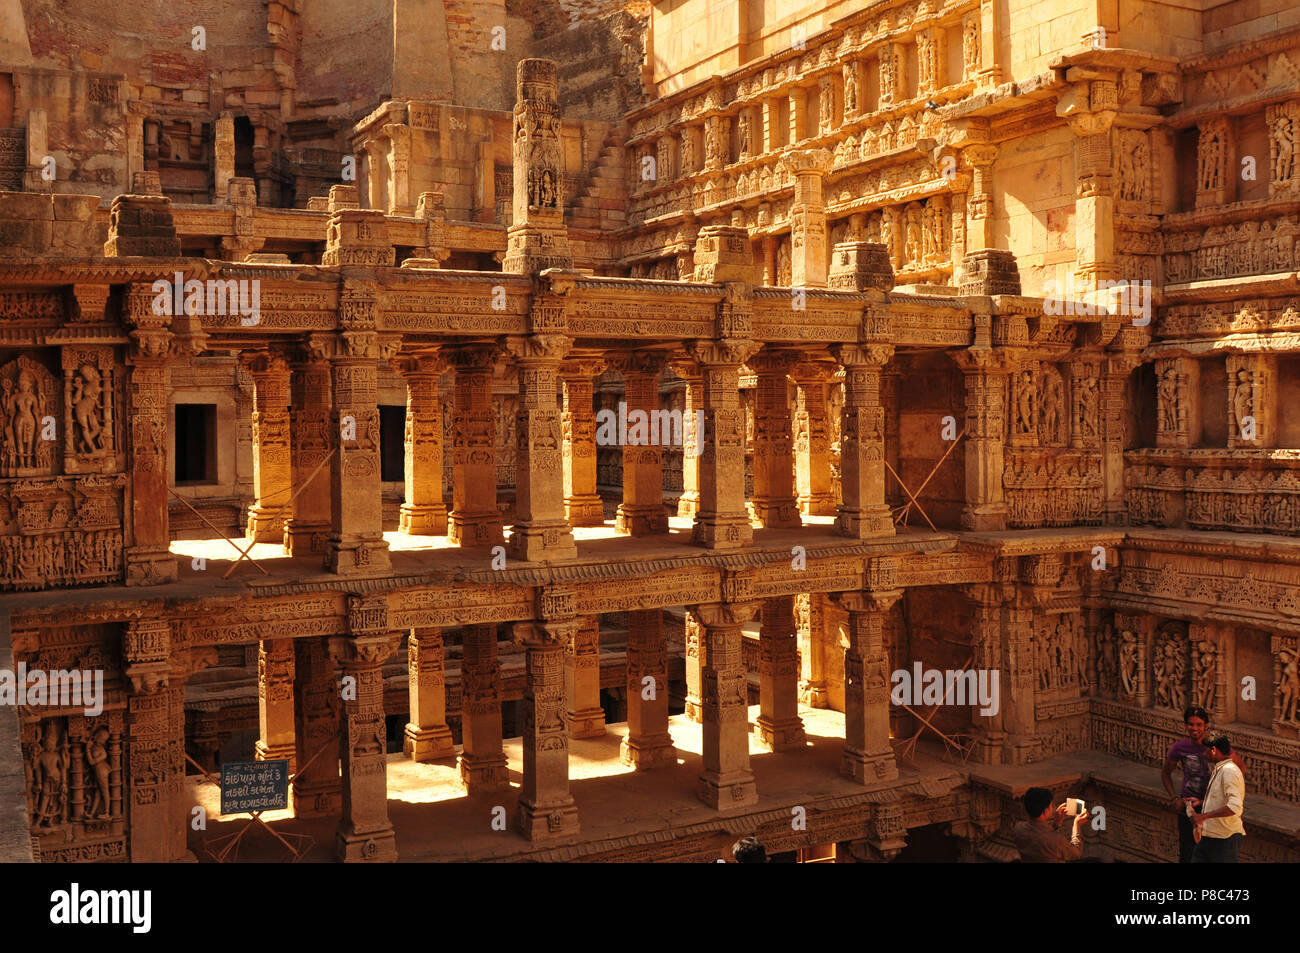 Gujarat: The Step Well Rani ki vav of the king Bhimdev in Patan - Stock Image